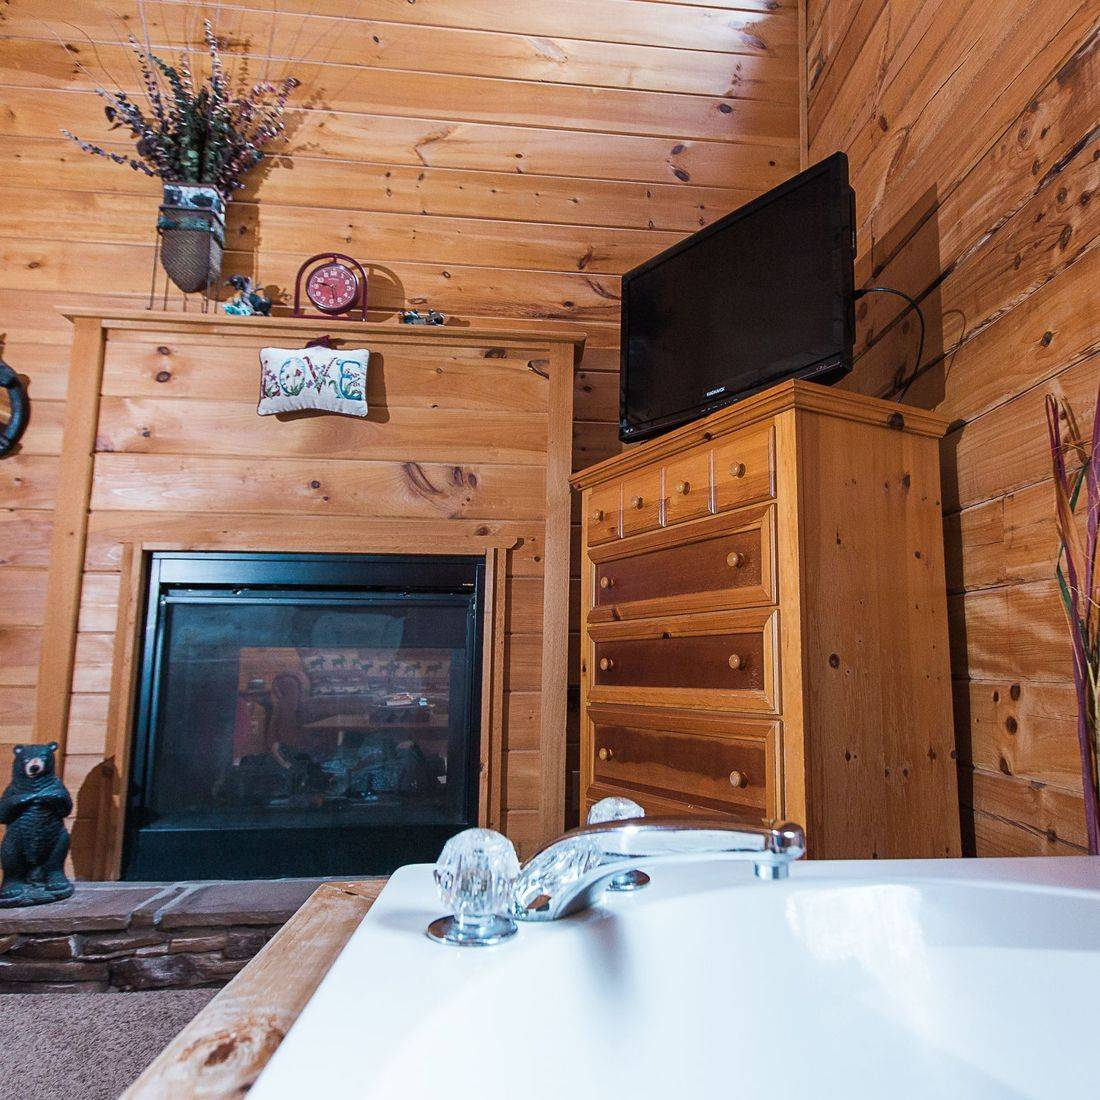 Jacuzzi tub in front of gas fireplace-Gatlinburg Cabin